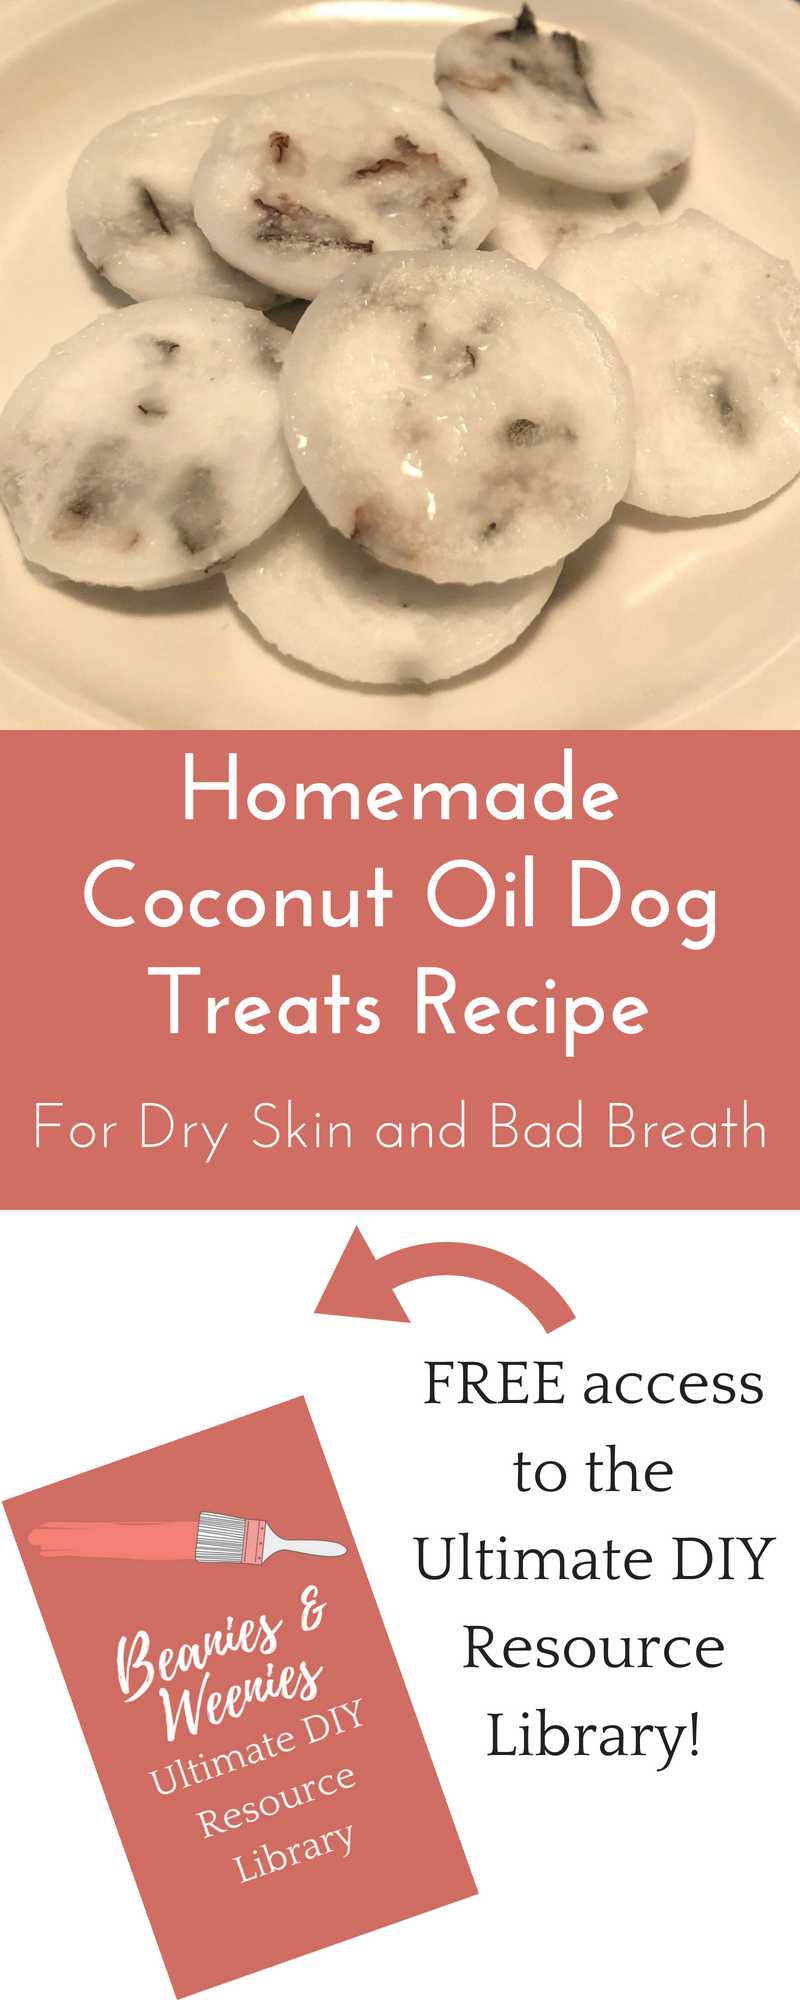 Homemade Coconut Oil Dog Treats Recipes